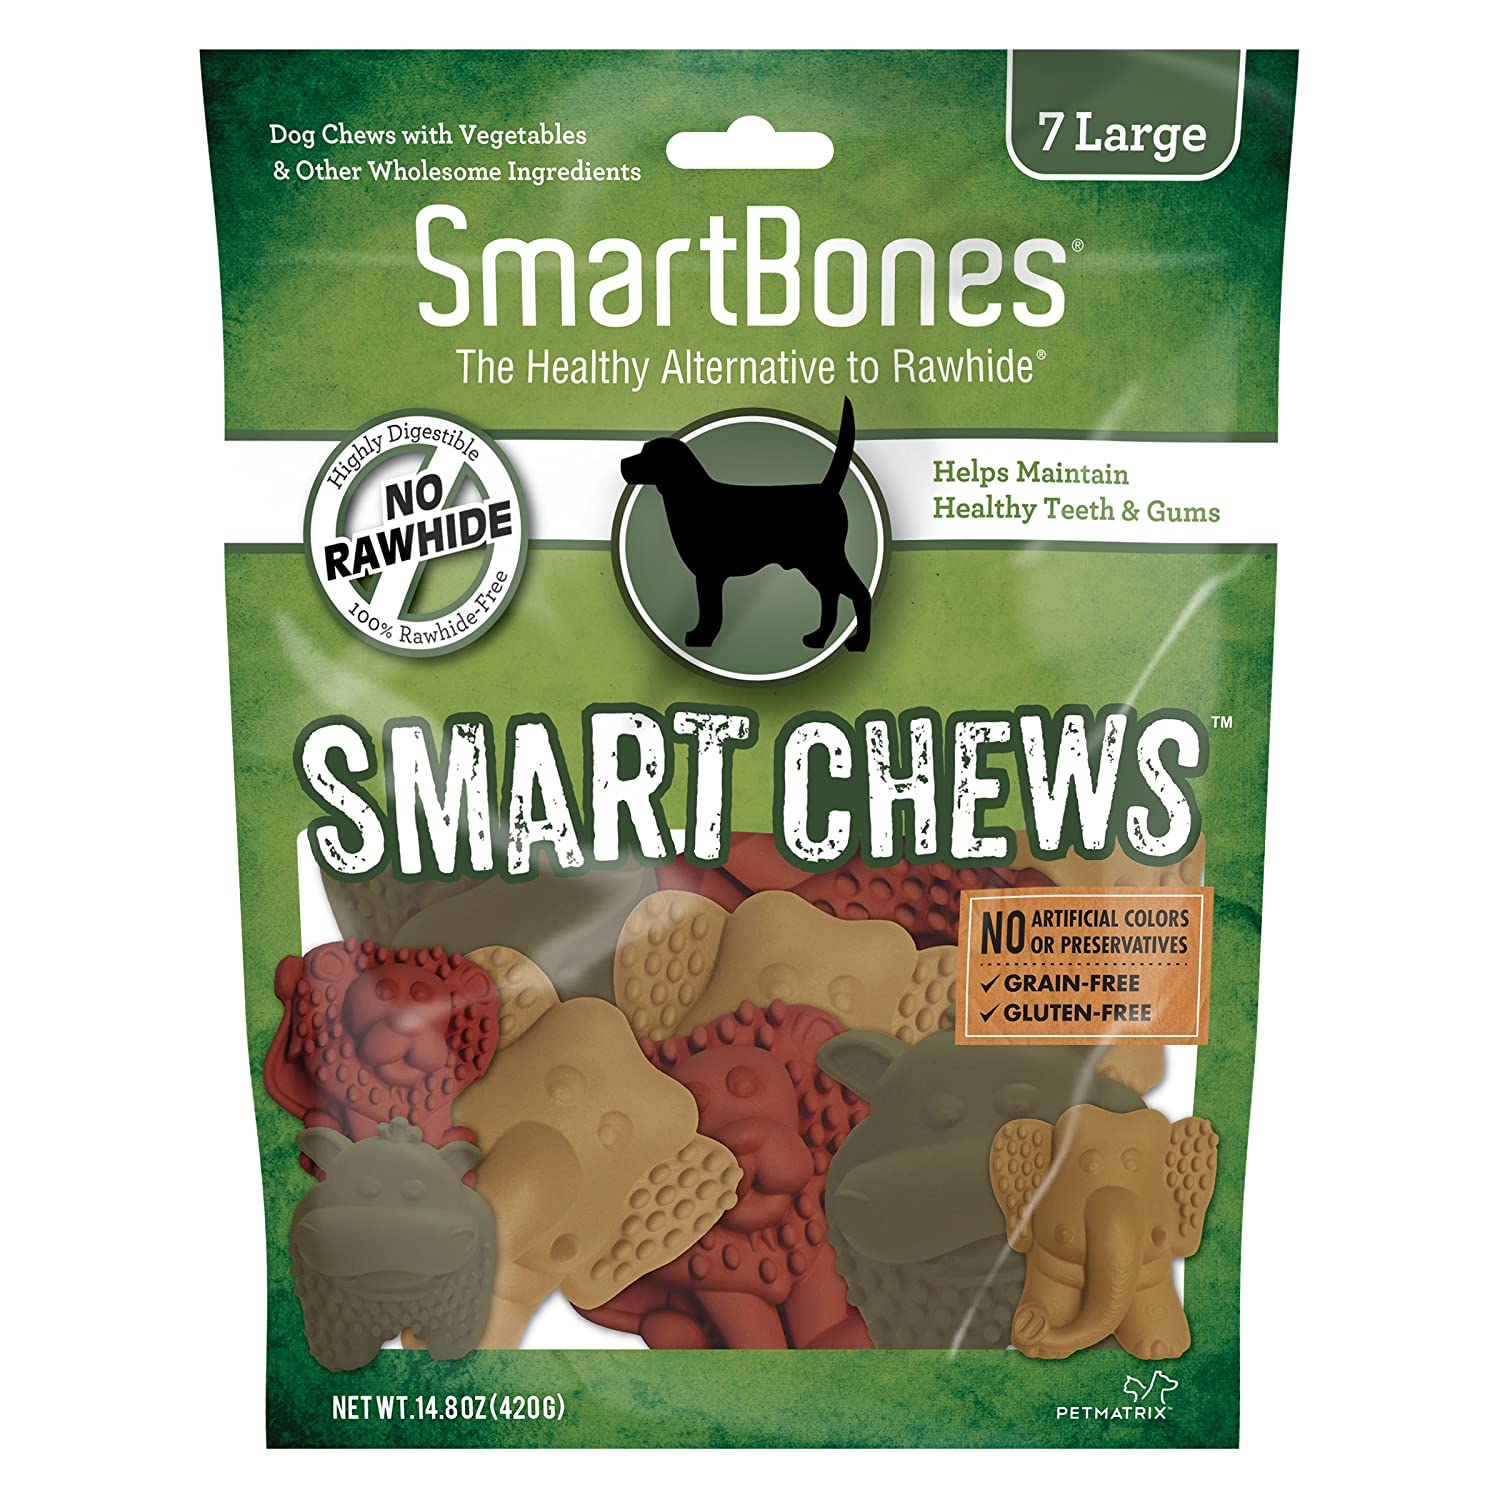 SmartBones SmartChews Safari Chews for Dogs